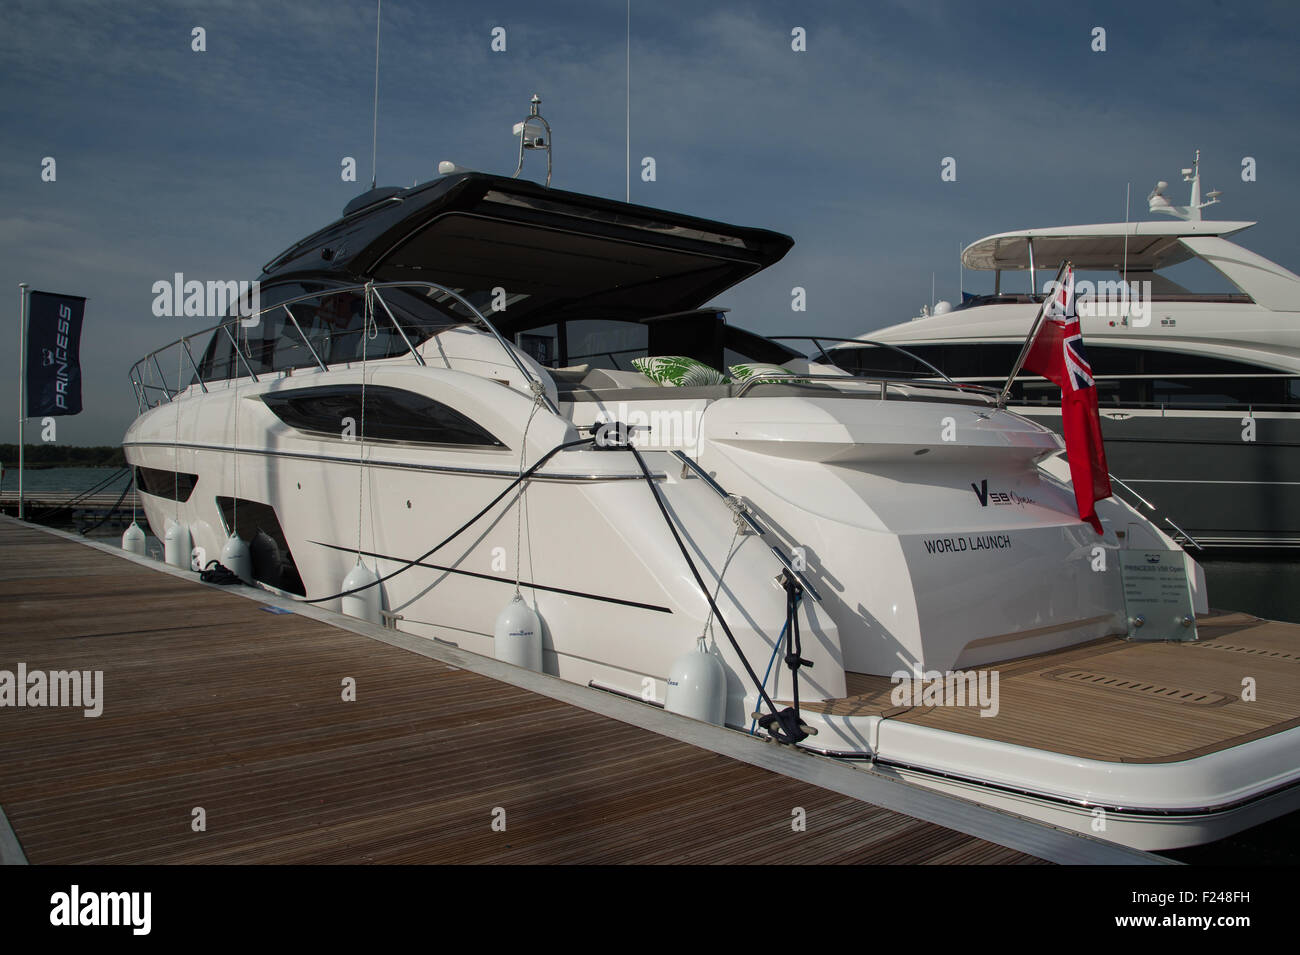 Southampton, UK. 11th September 2015. Southampton Boat Show 2015. The Princess V58 Open launched at the show. Credit: Stock Photo